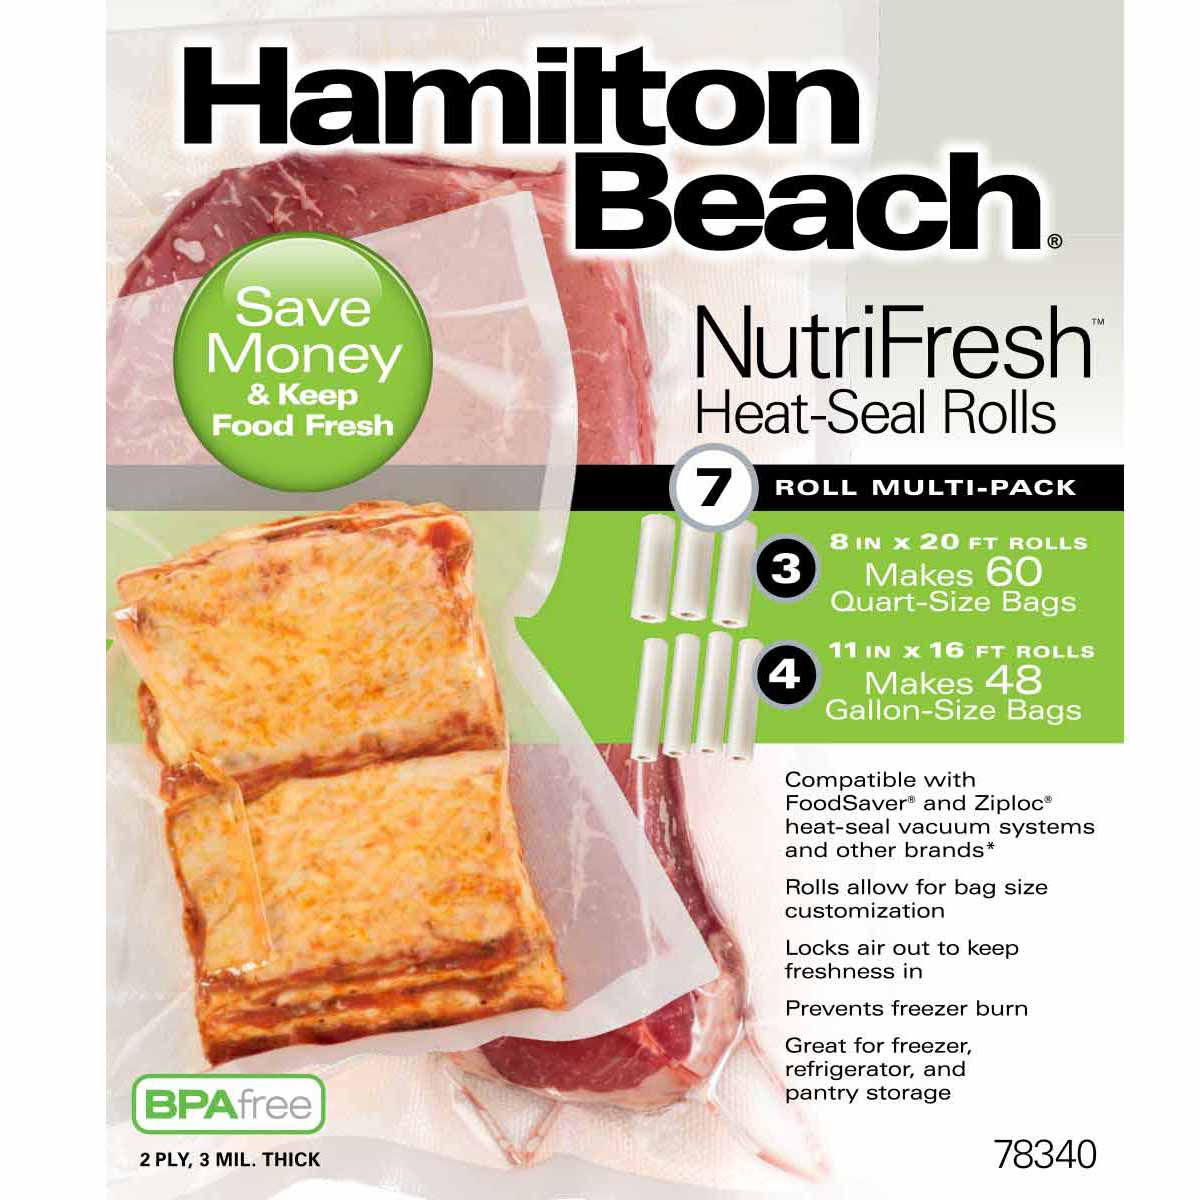 NutriFresh™ Heat-Seal 7 Roll Multi-Pack (78340)